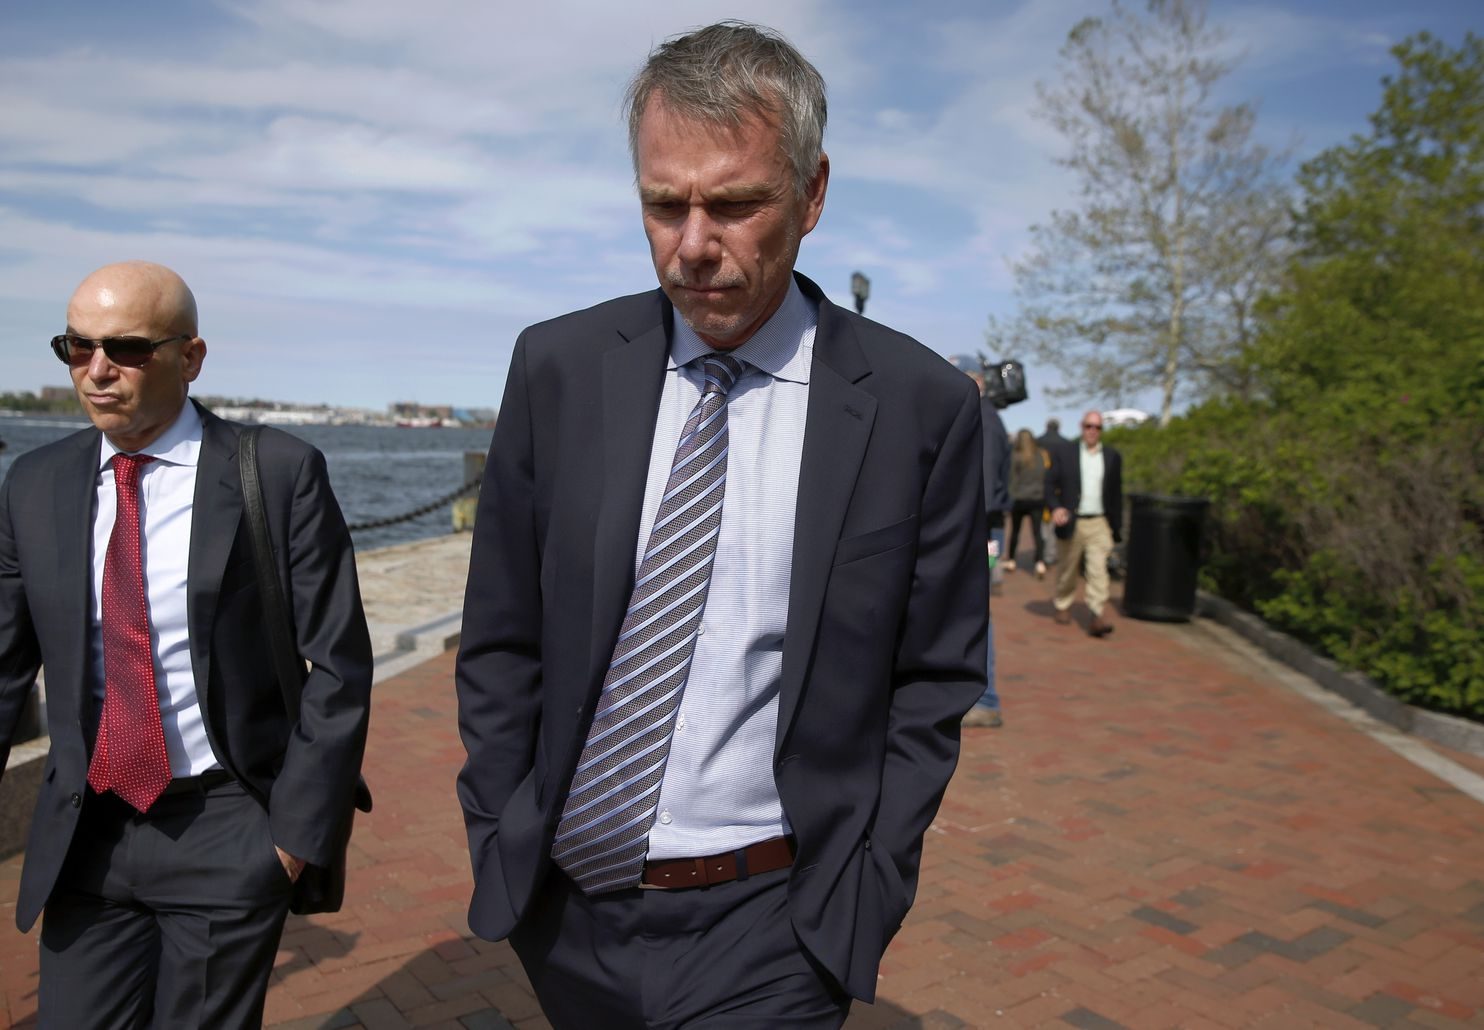 California businessman gets probation instead of jail in admissions scandal